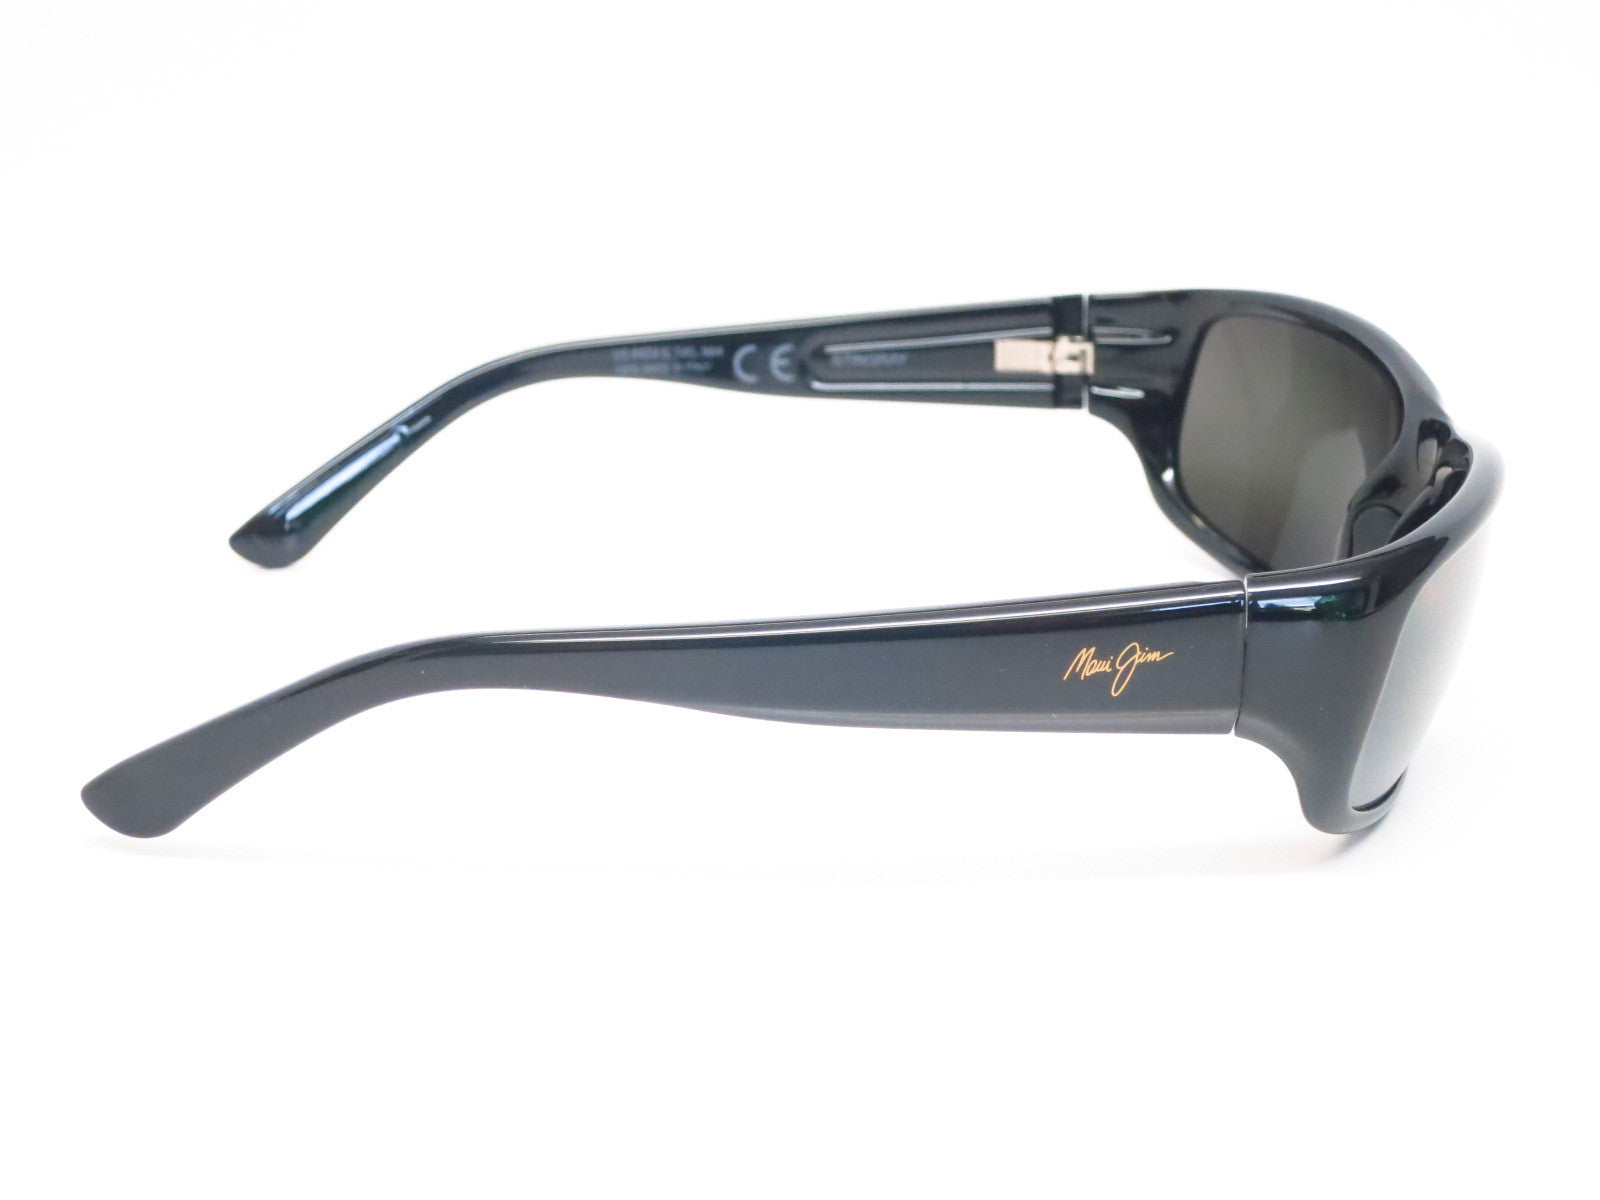 07b2db94f6 ... Maui Jim Stingray MJ 103-02 Gloss Black Polarized Sunglasses - Eye  Heart Shades ...